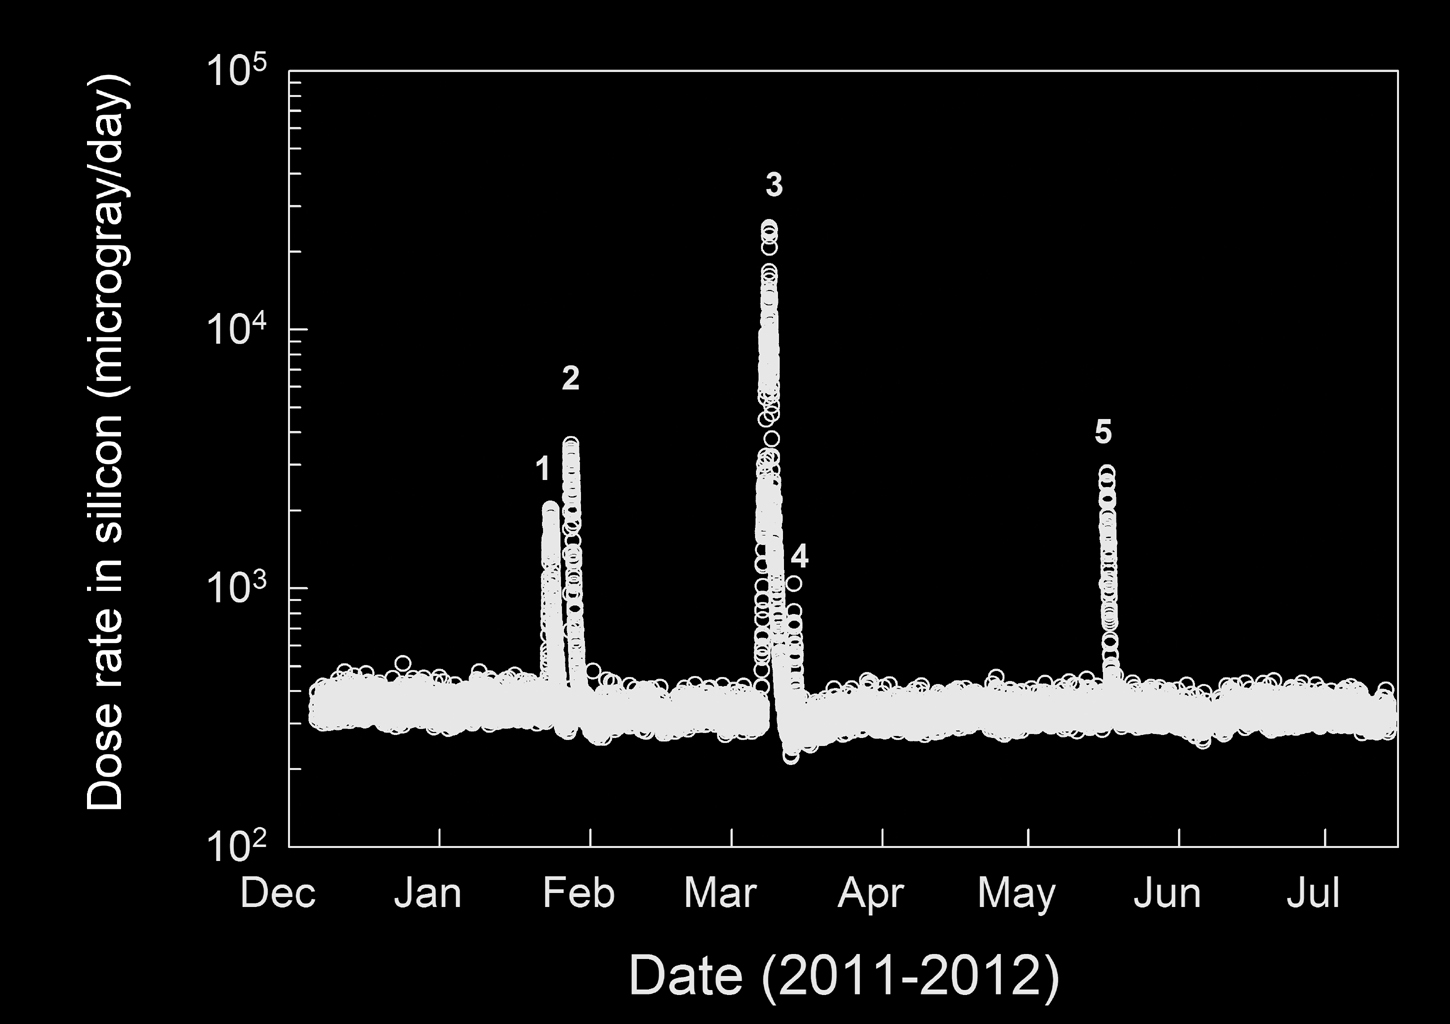 This graphic shows the level of natural radiation detected by the Radiation Assessment Detector shielded inside NASA's Mars Science Laboratory on the trip from Earth to Mars from December 2011 to July 2012.